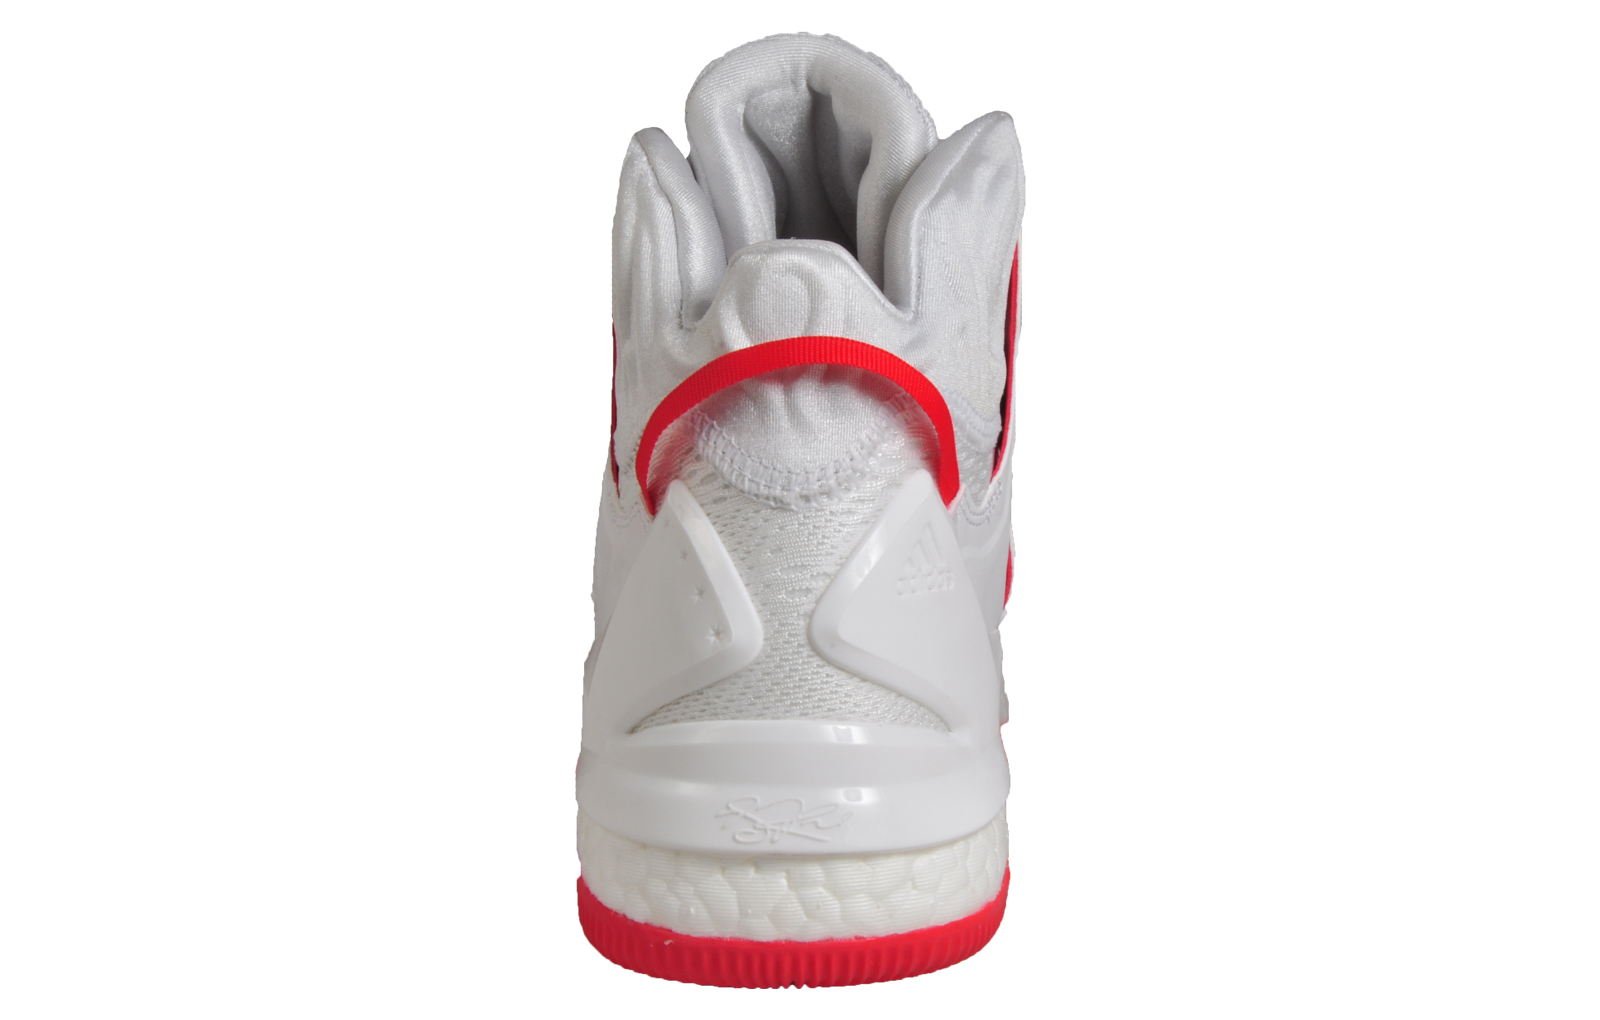 reputable site f7f5e 6dddf Adidas Mens Derrick Rose D Rose 7 Boost Premium Basketball Trainers White